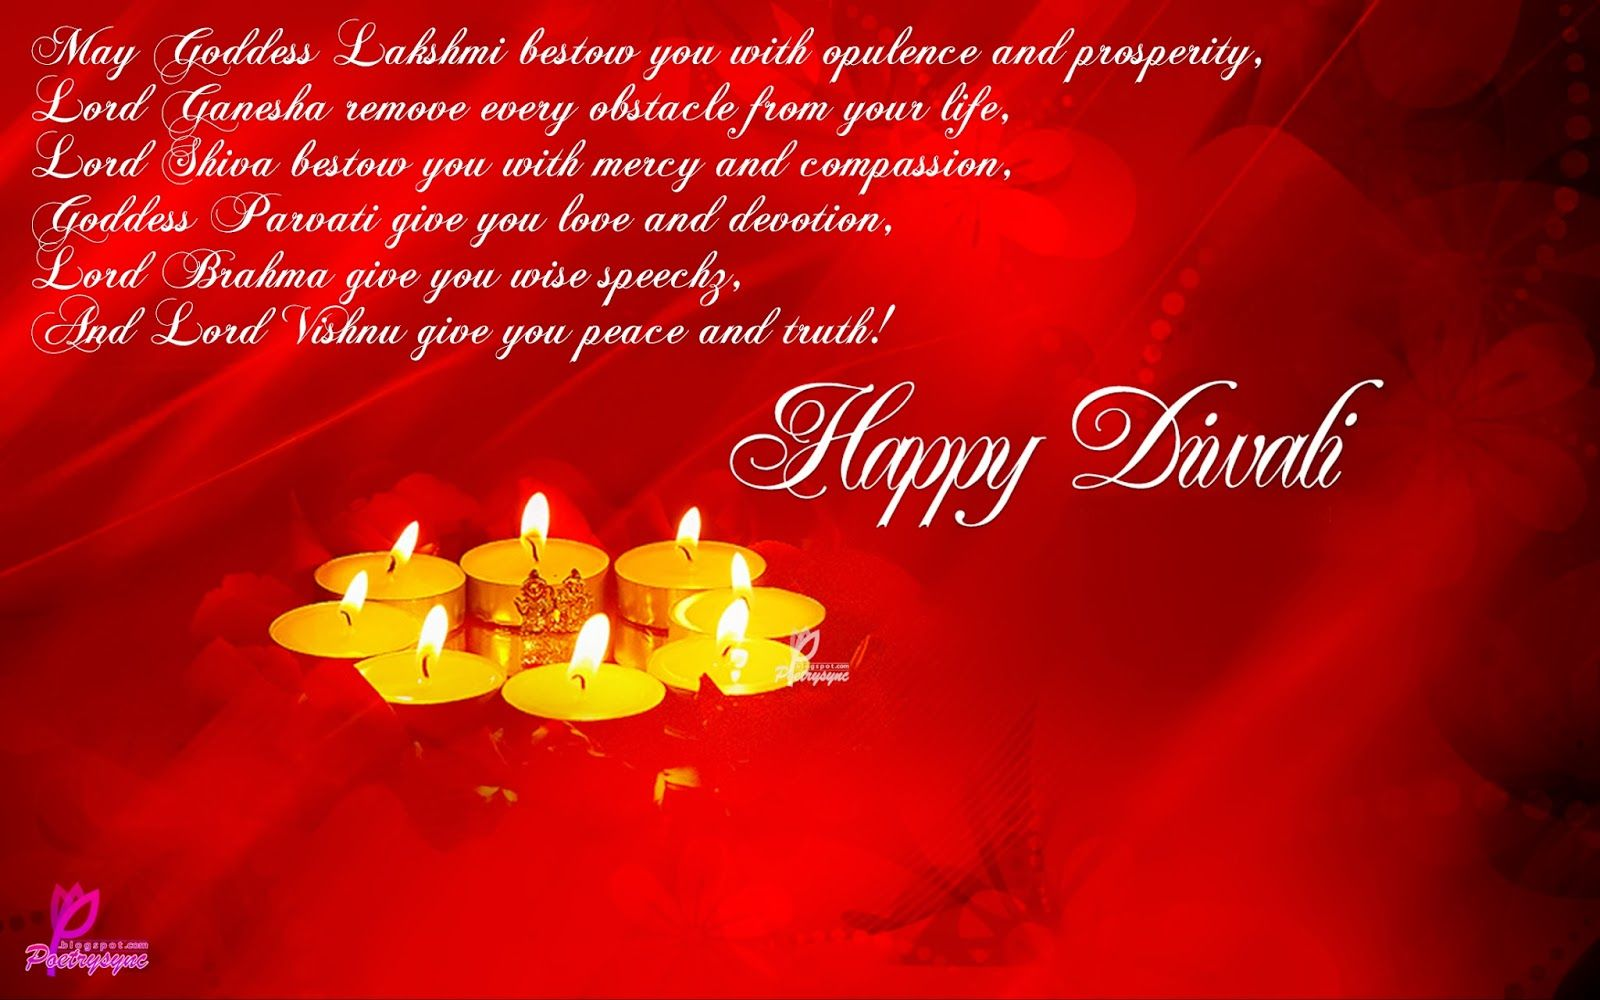 Happy diwali sms wishes images in english diwali pinterest happy diwali sms wishes images in english kristyandbryce Choice Image